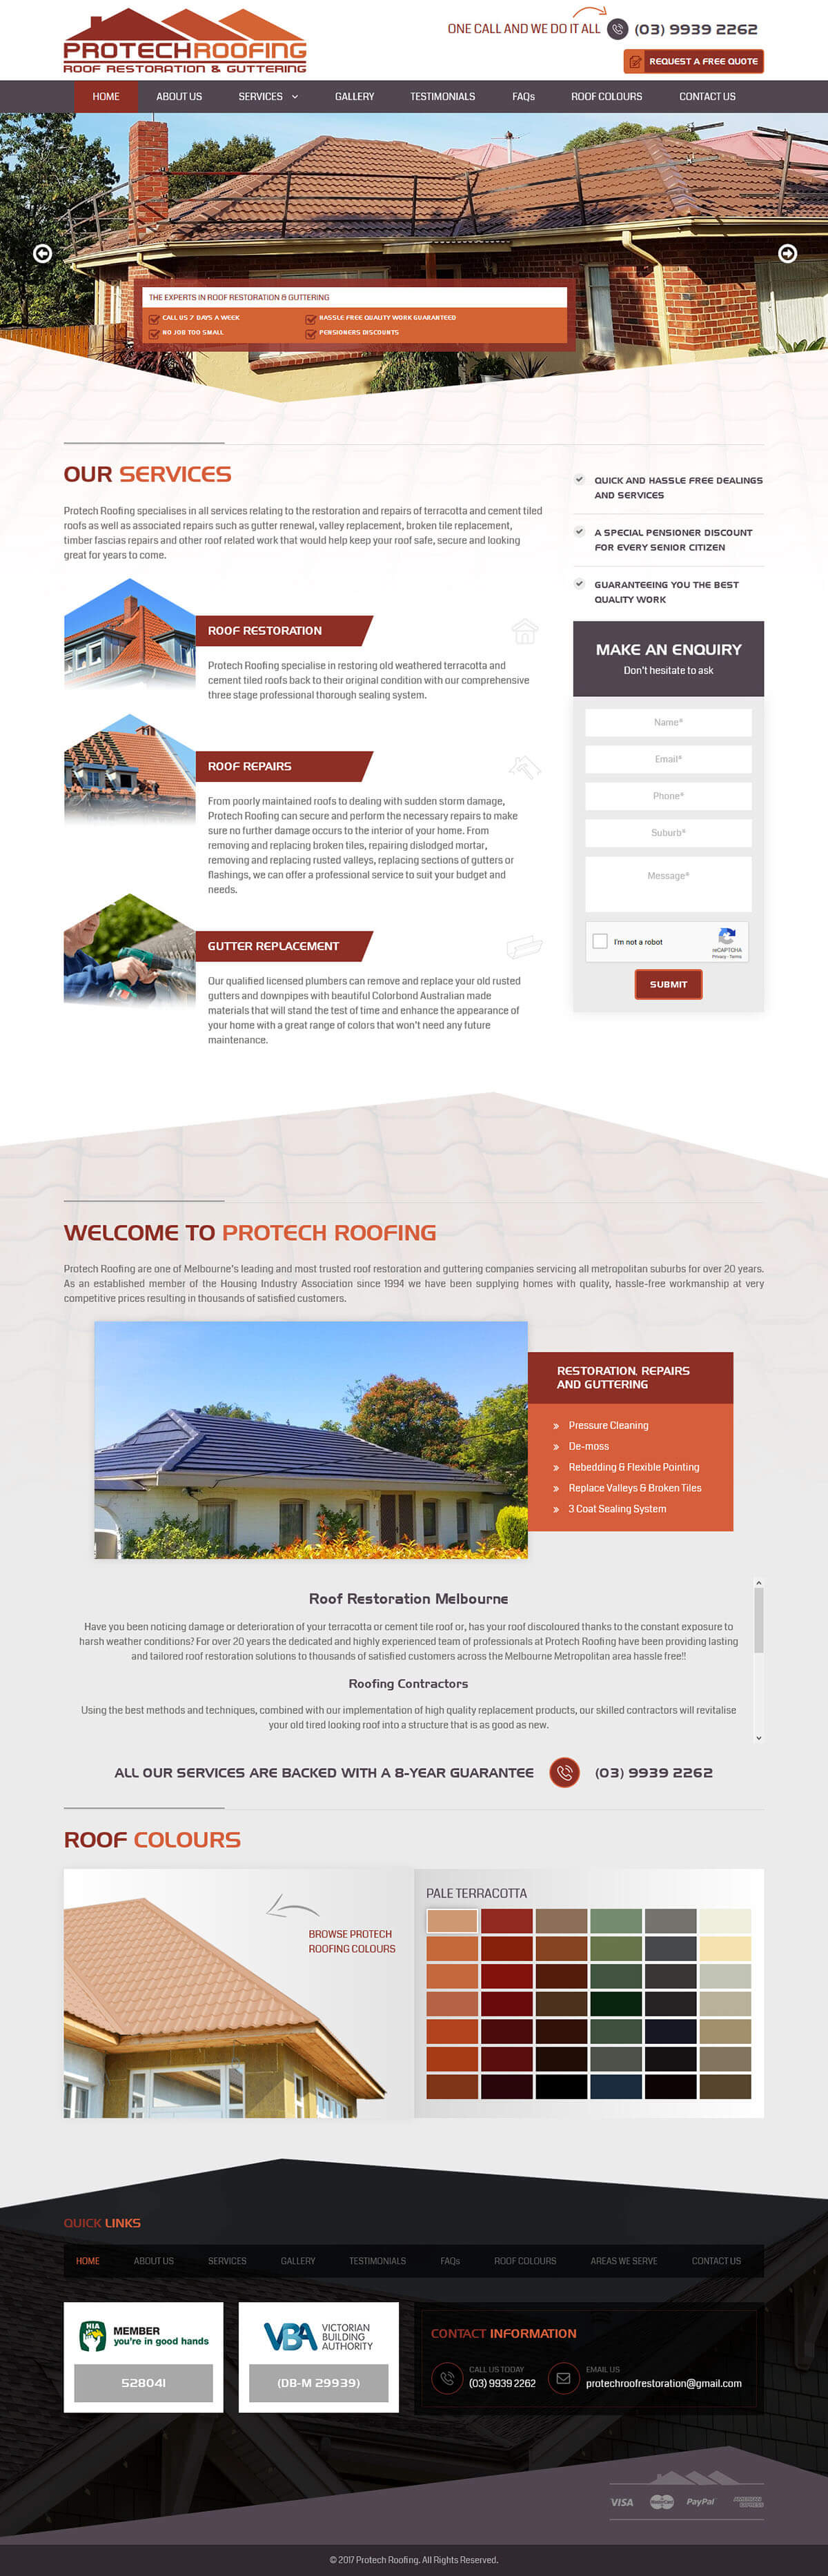 Pro-tech roofing